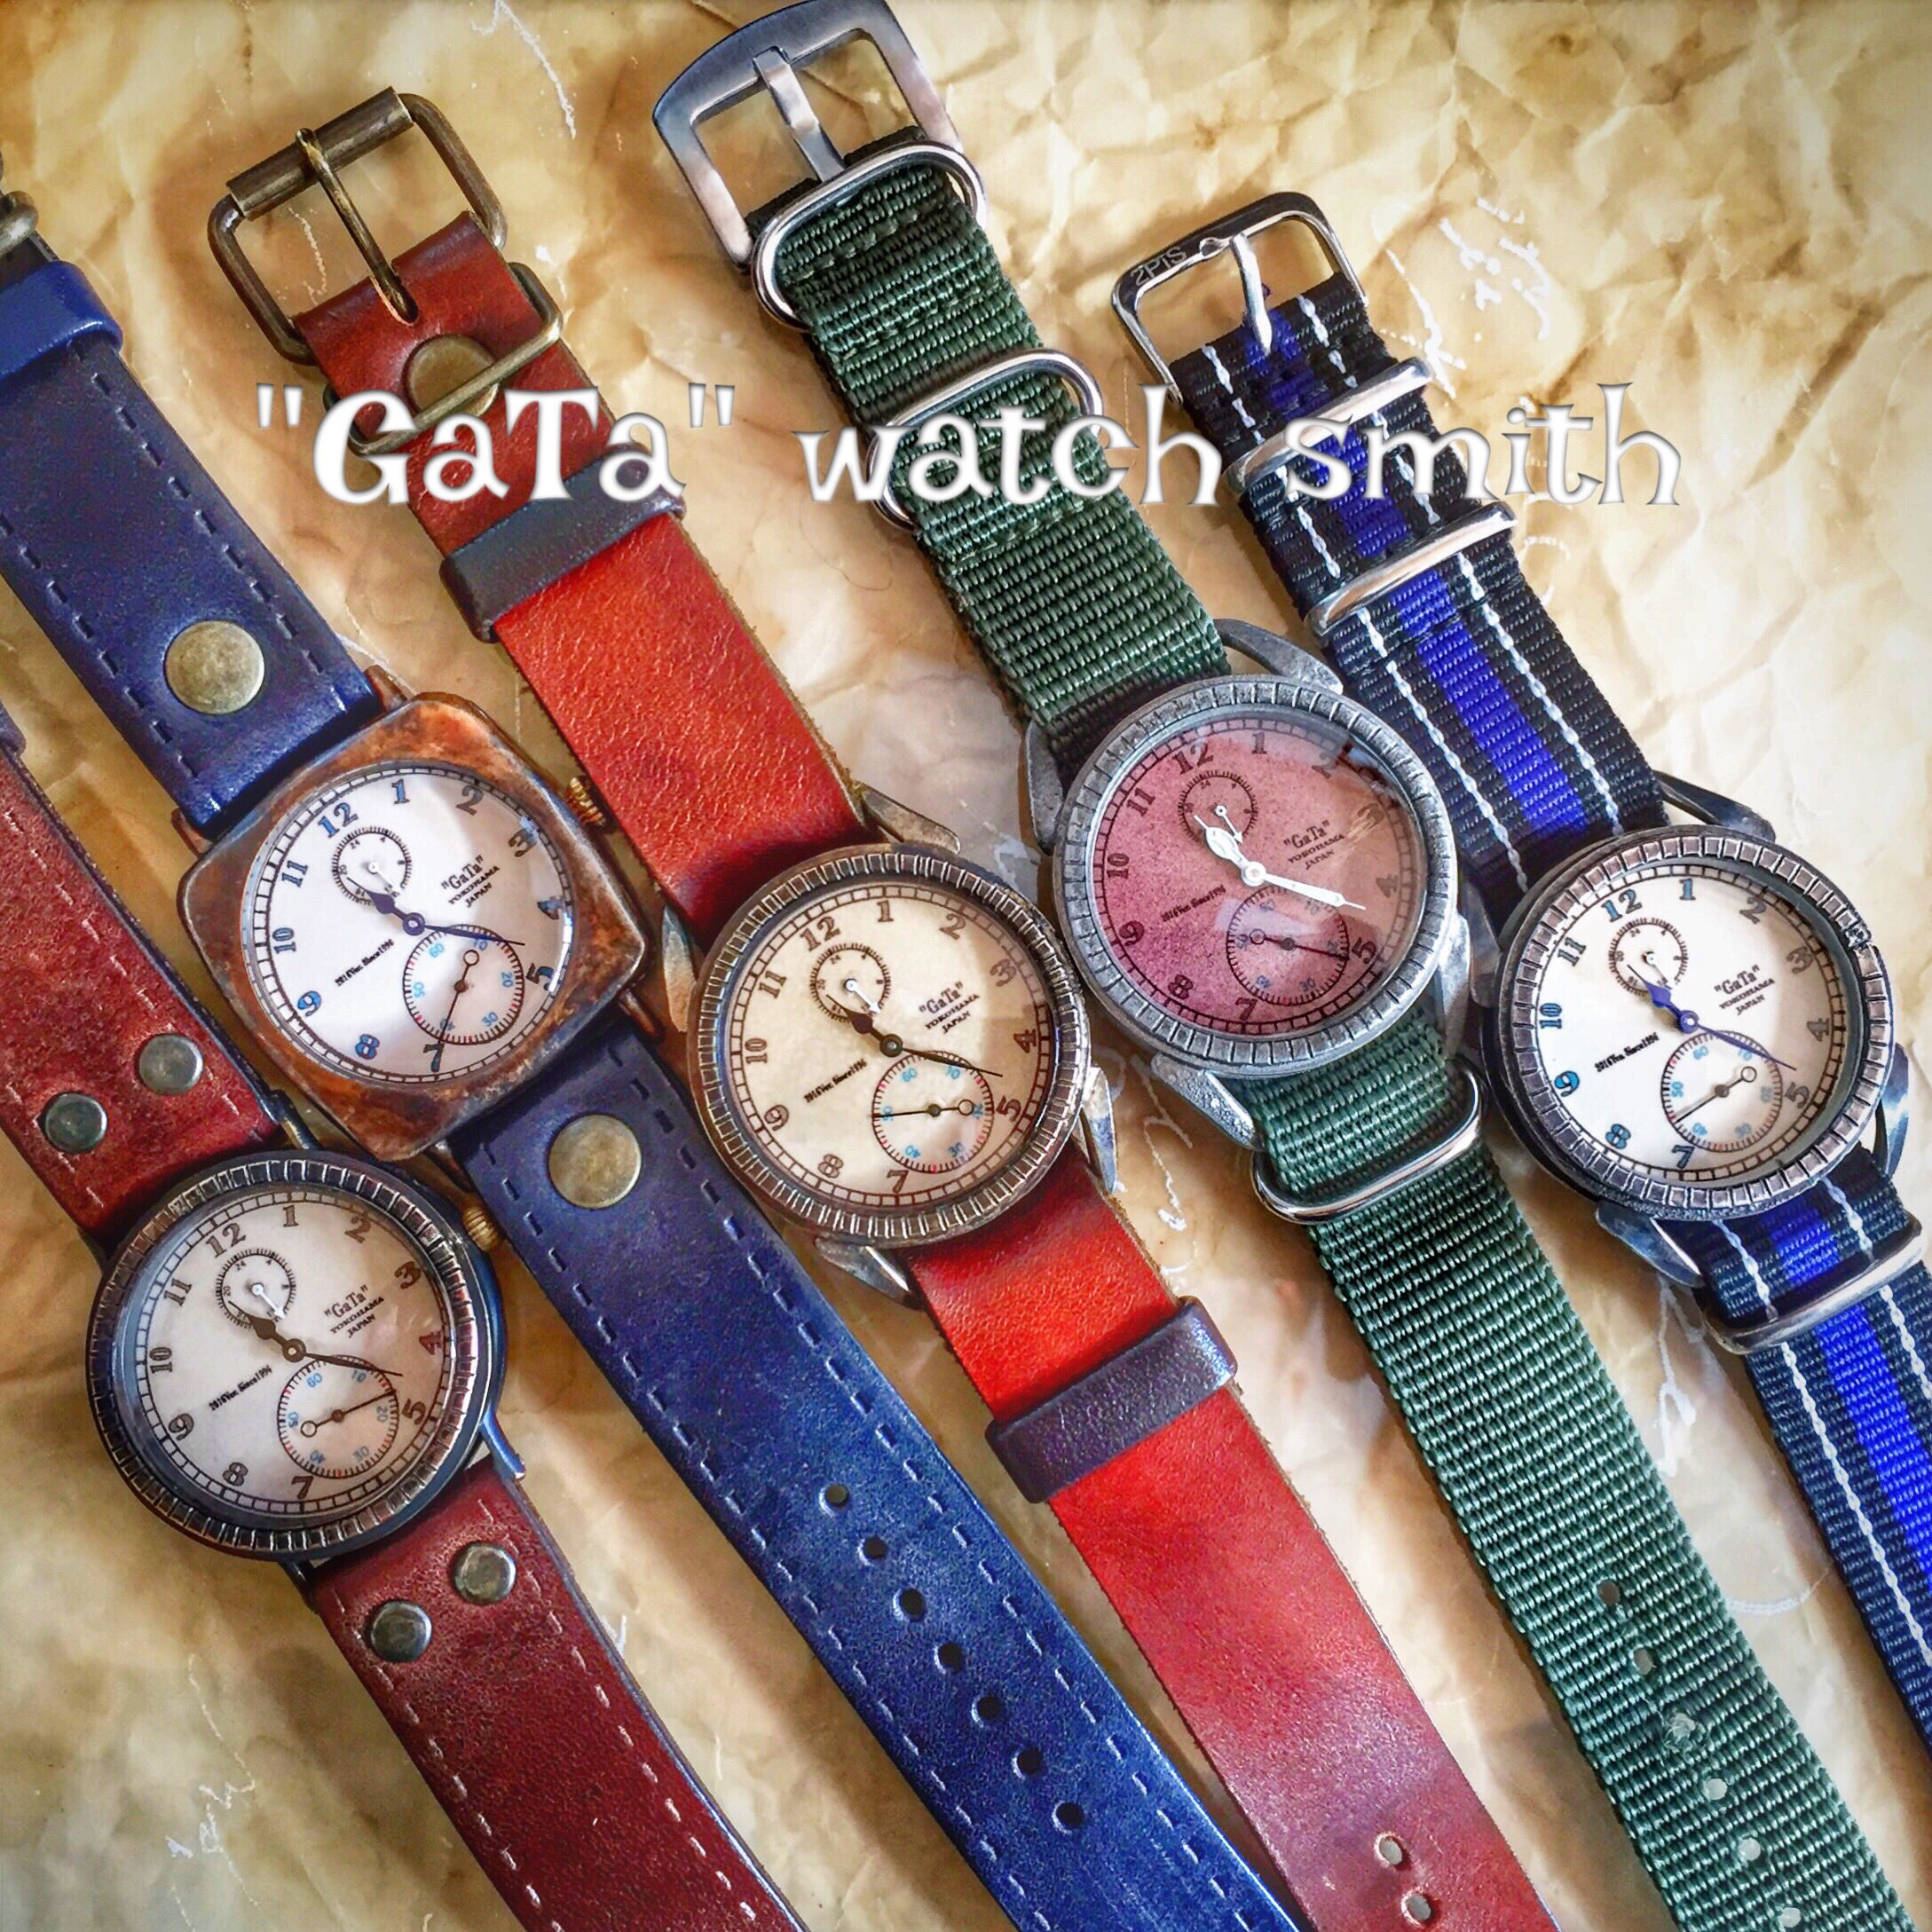 """GaTa"" watch smith"